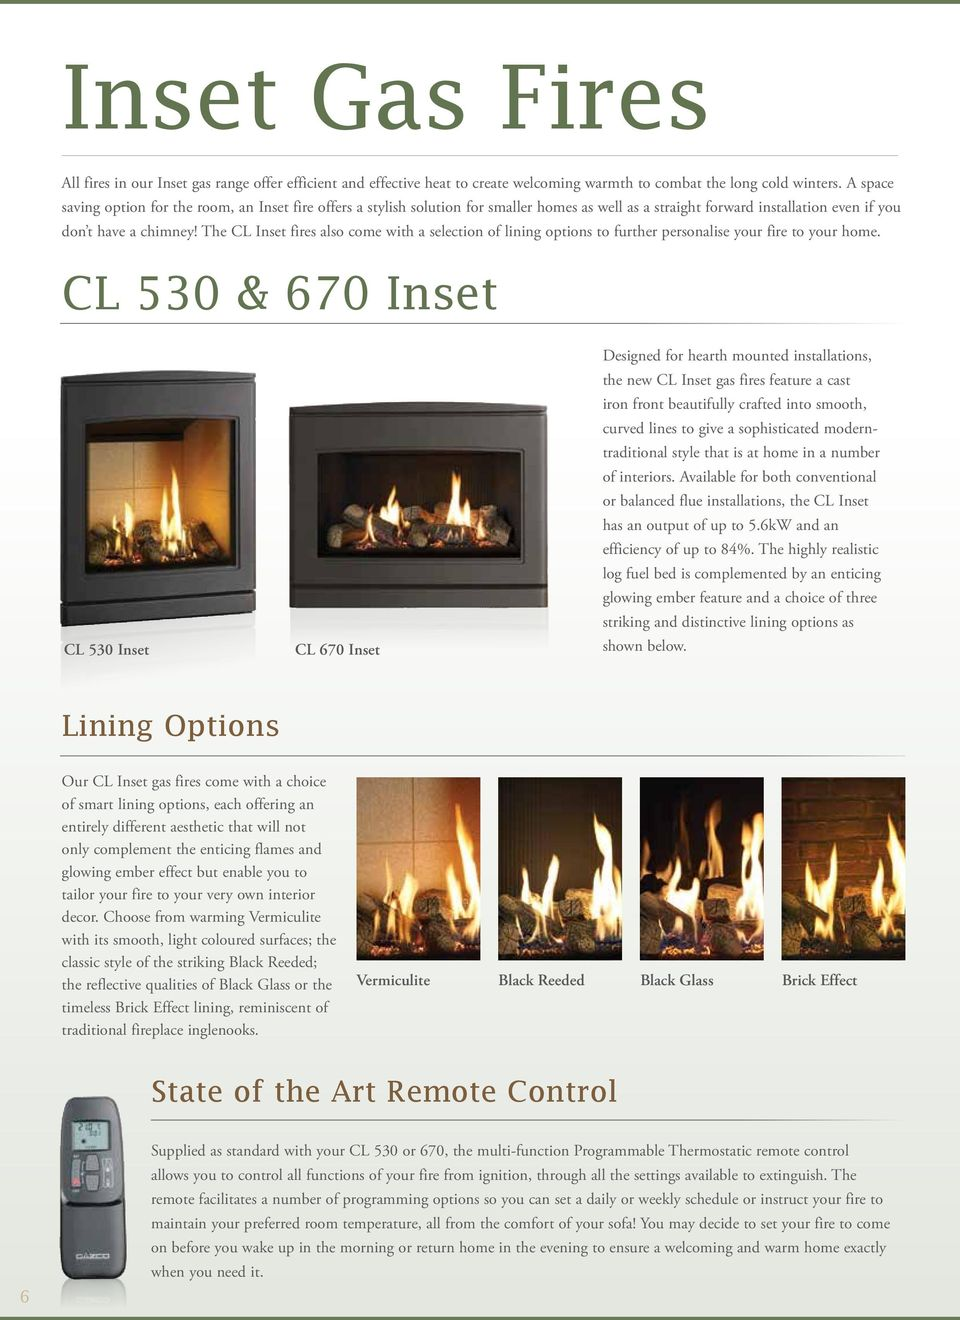 The CL Inset fires also come with a selection of lining options to further personalise your fire to your home.